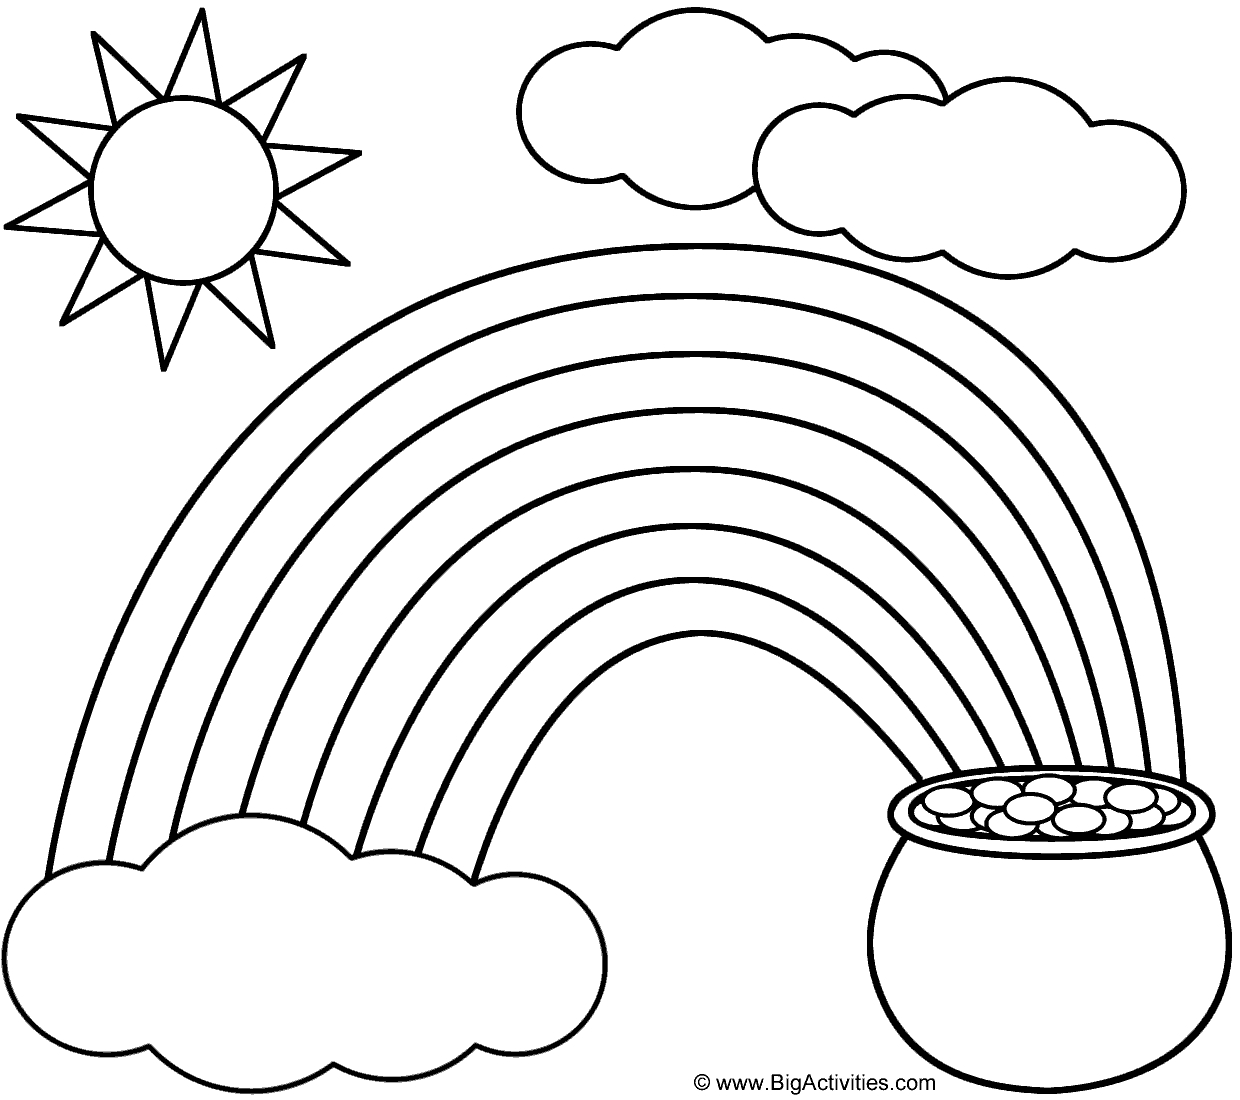 60+ St. Patrick's Day Activities And Coloring Pages | St Patty's Day - Free Printable St Patrick Day Coloring Pages